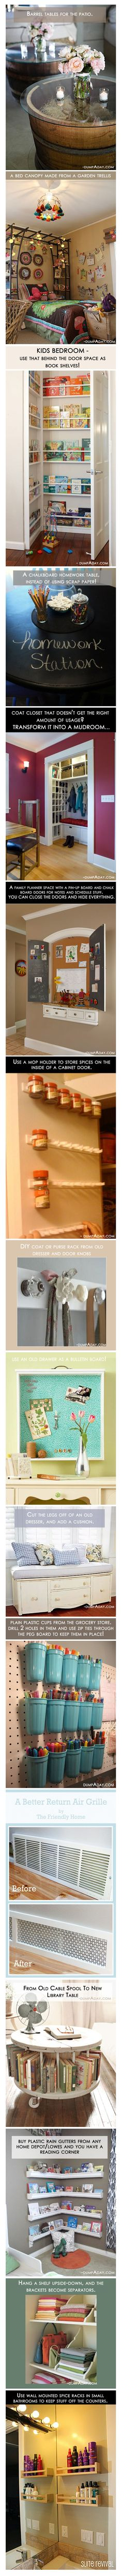 16 Amazing Do It Yourself Home Ideas | Mommy Has A Potty MouthMommy Has A Potty Mouth